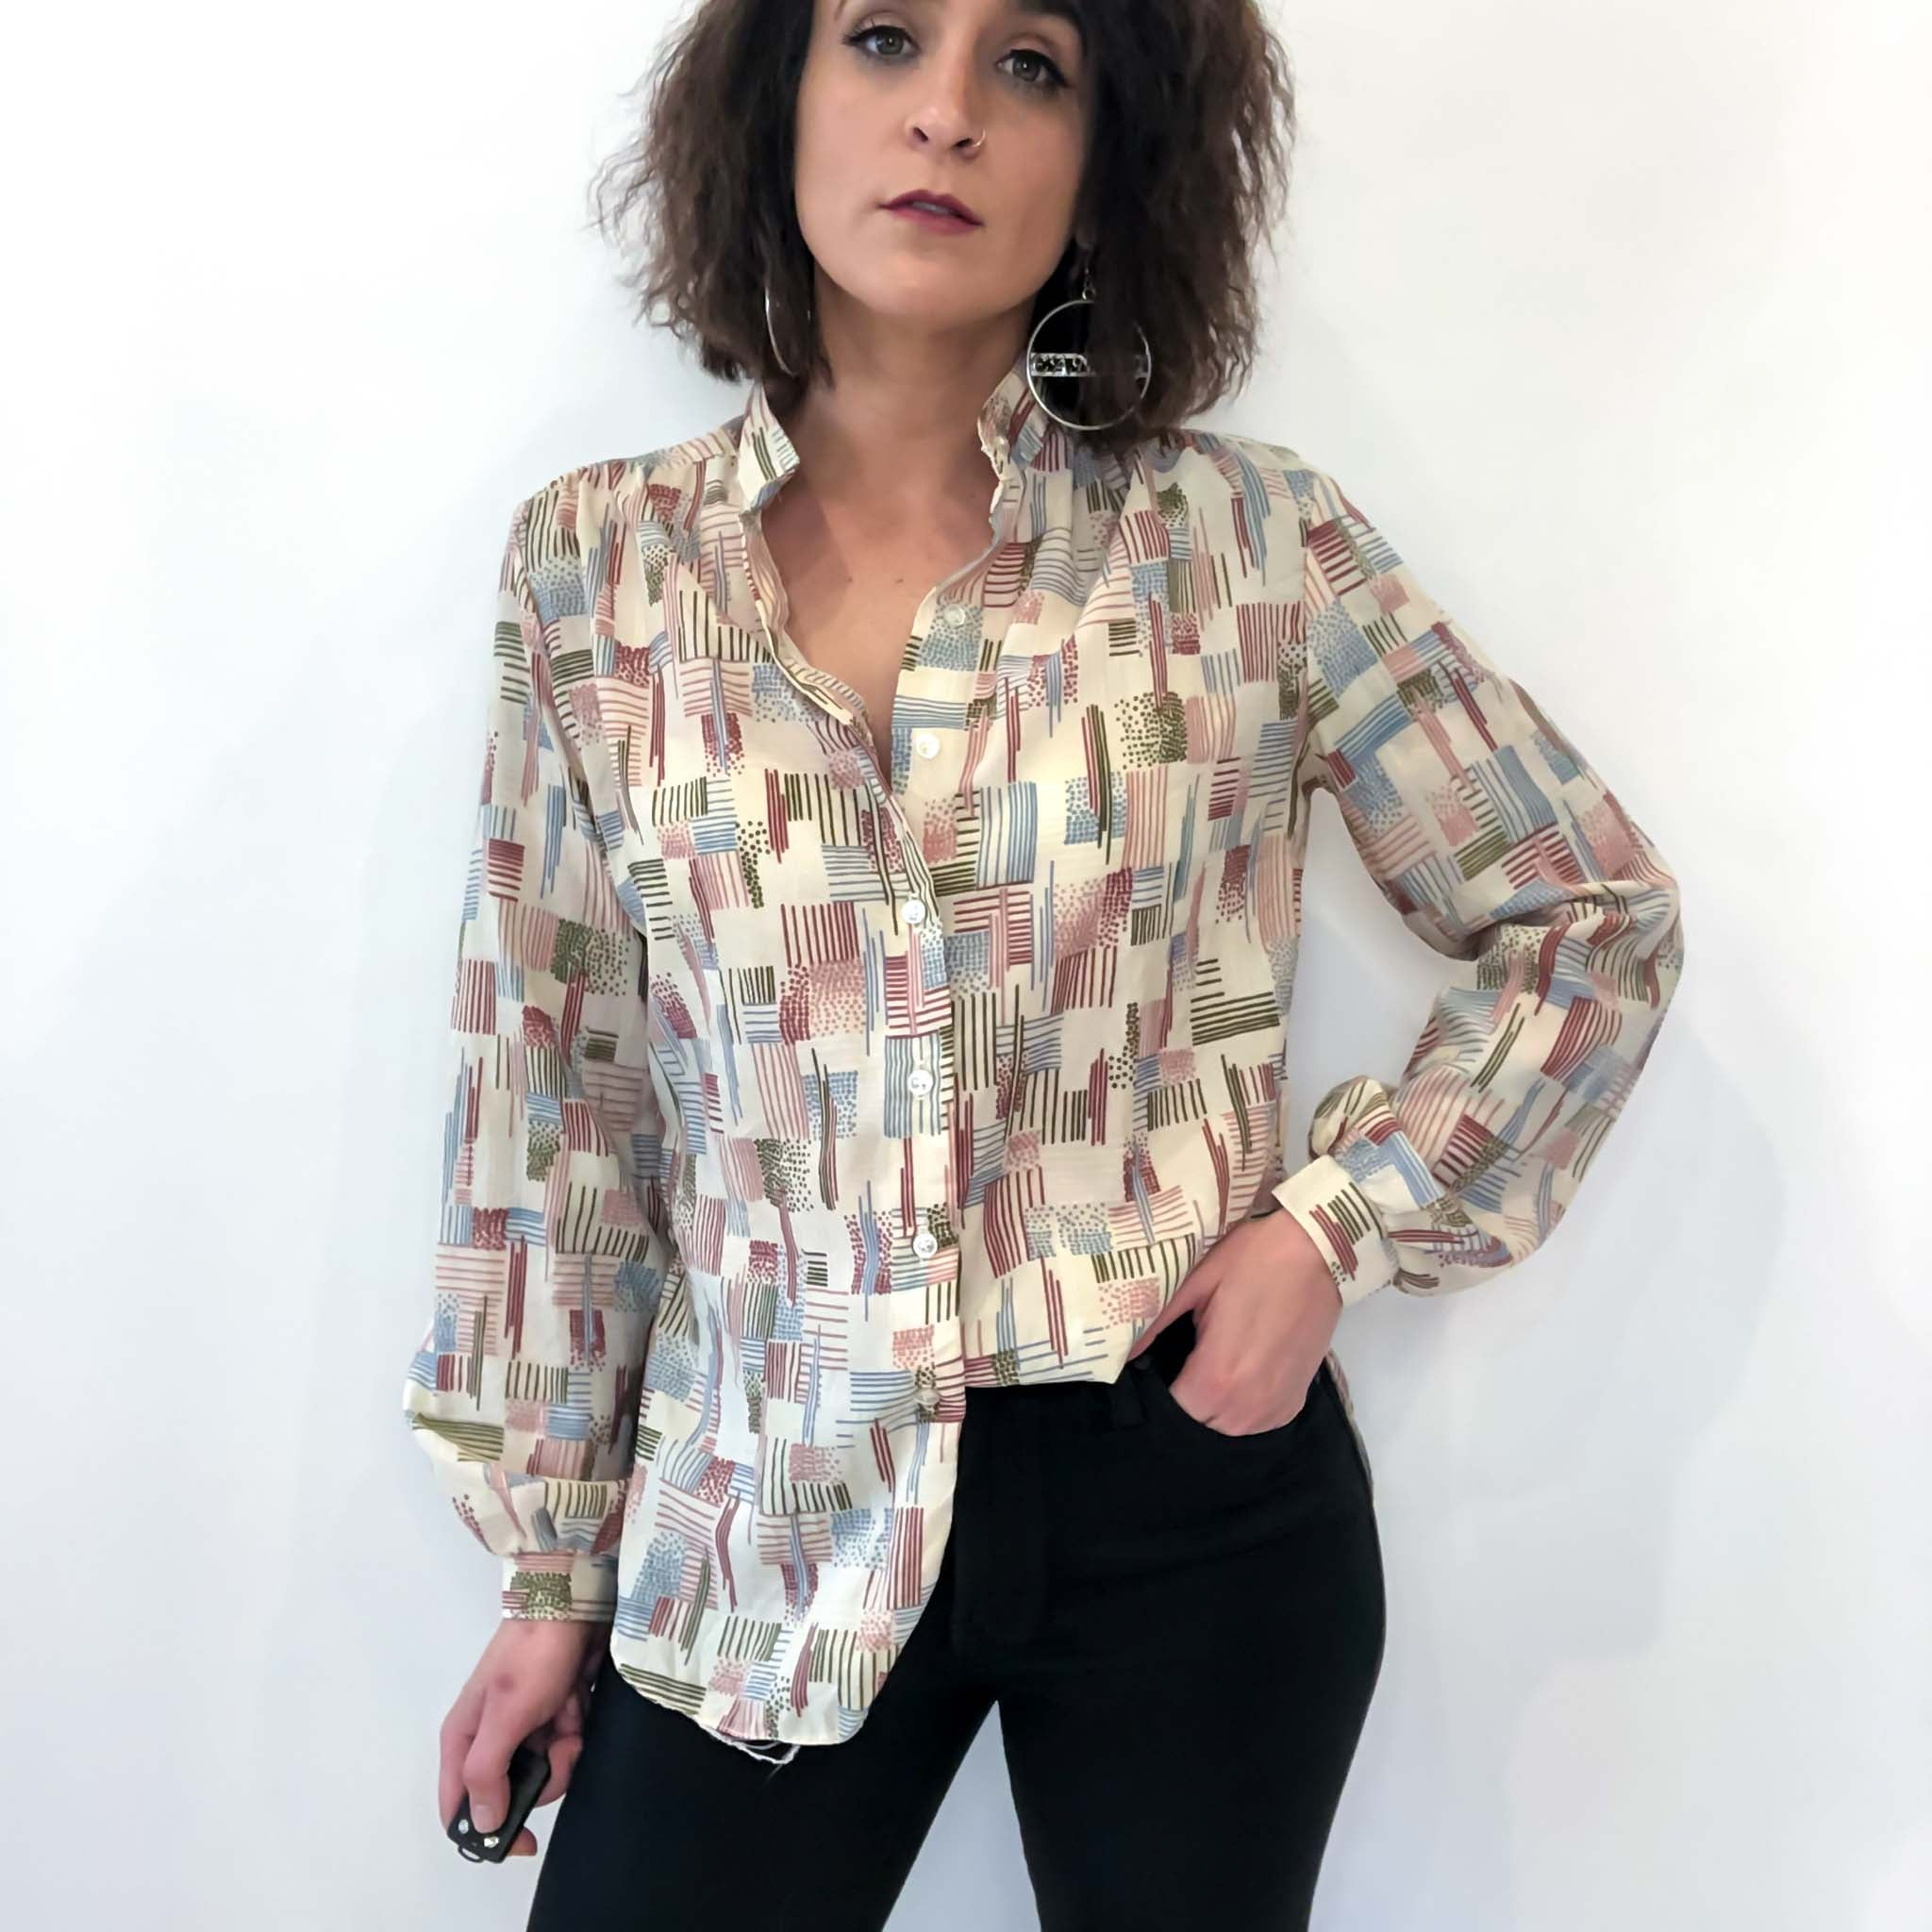 VINTAGE PRINTED BLOUSE : MEDIUM LARGE : IT'S PLACKETS! TOP